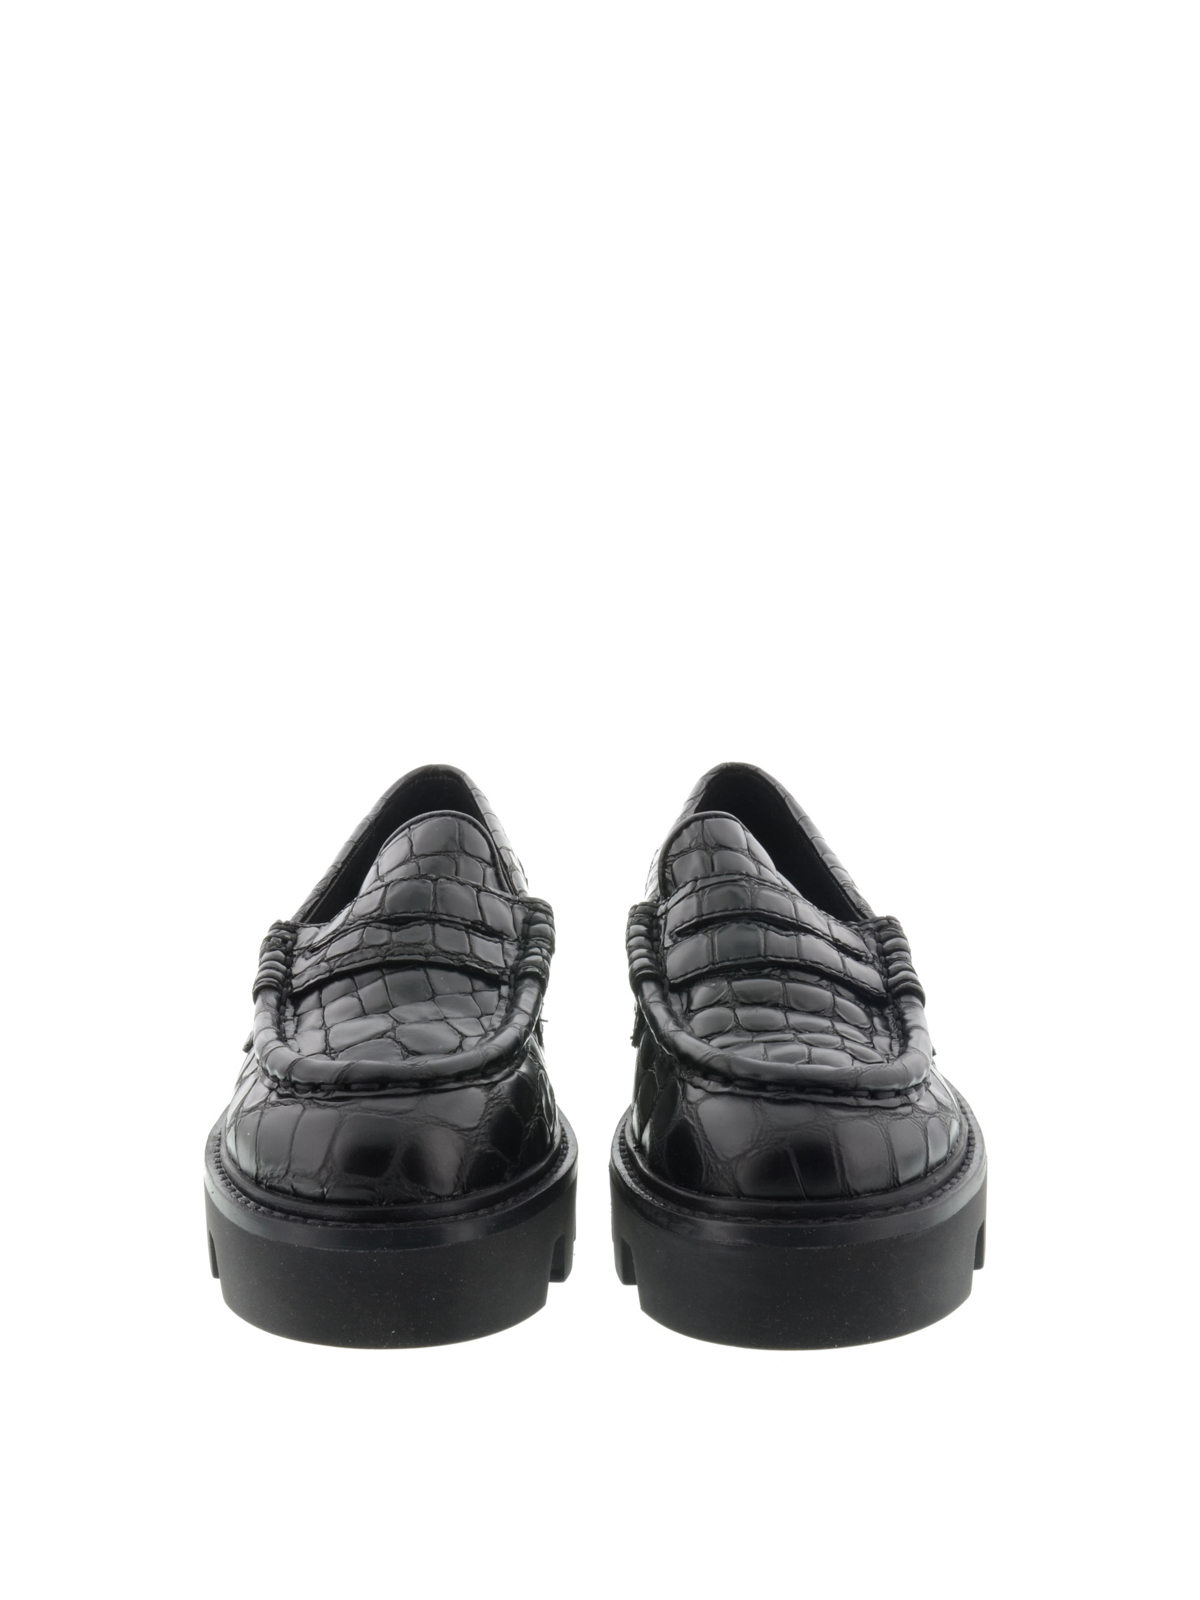 d7c0d153813 Ash - Lug sole Serum Black loafers - Loafers   Slippers - SERUMBLACK